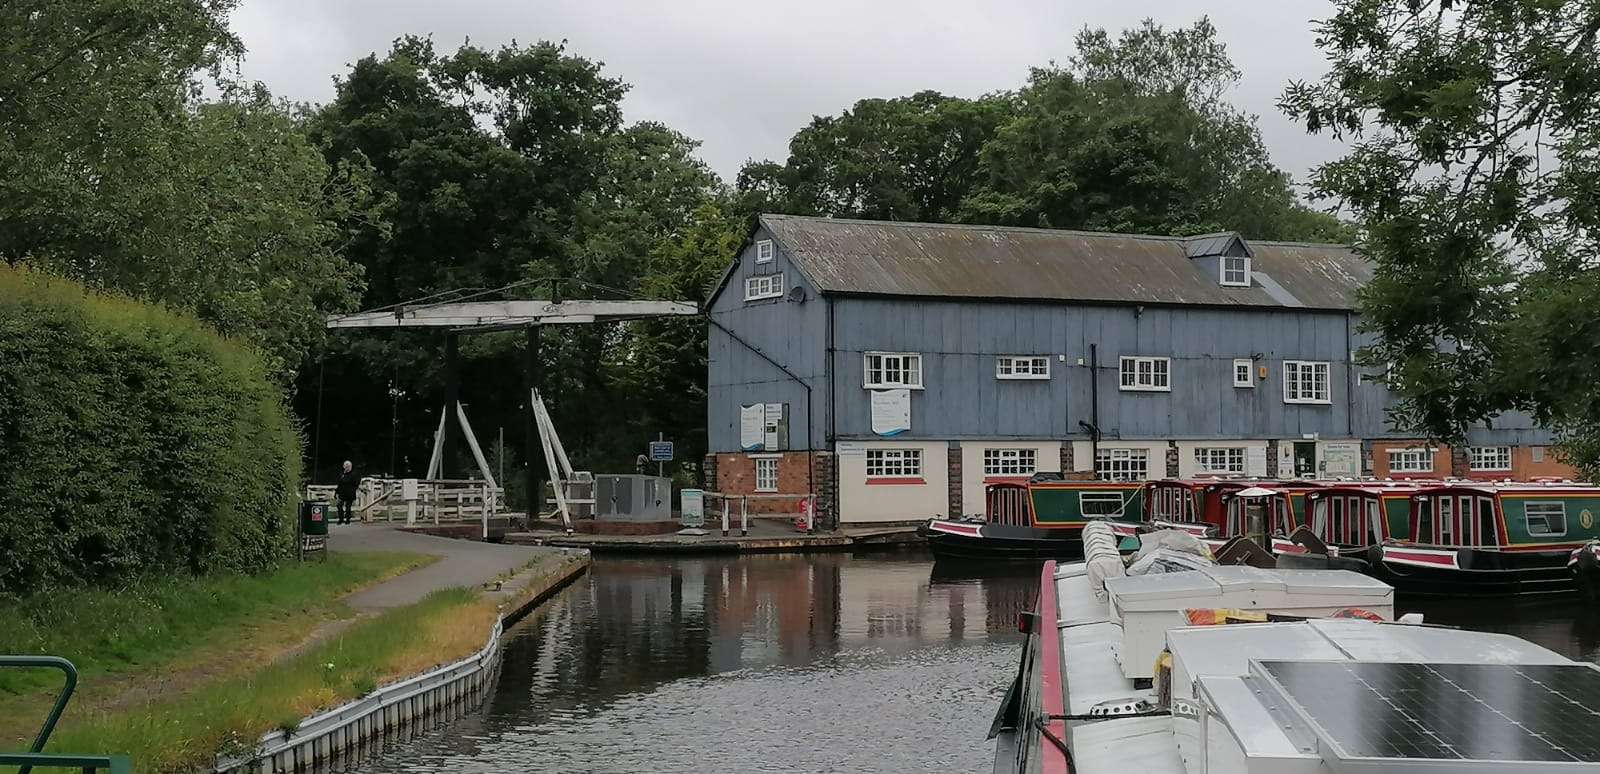 Wrenbury Lift Bridge June 2020